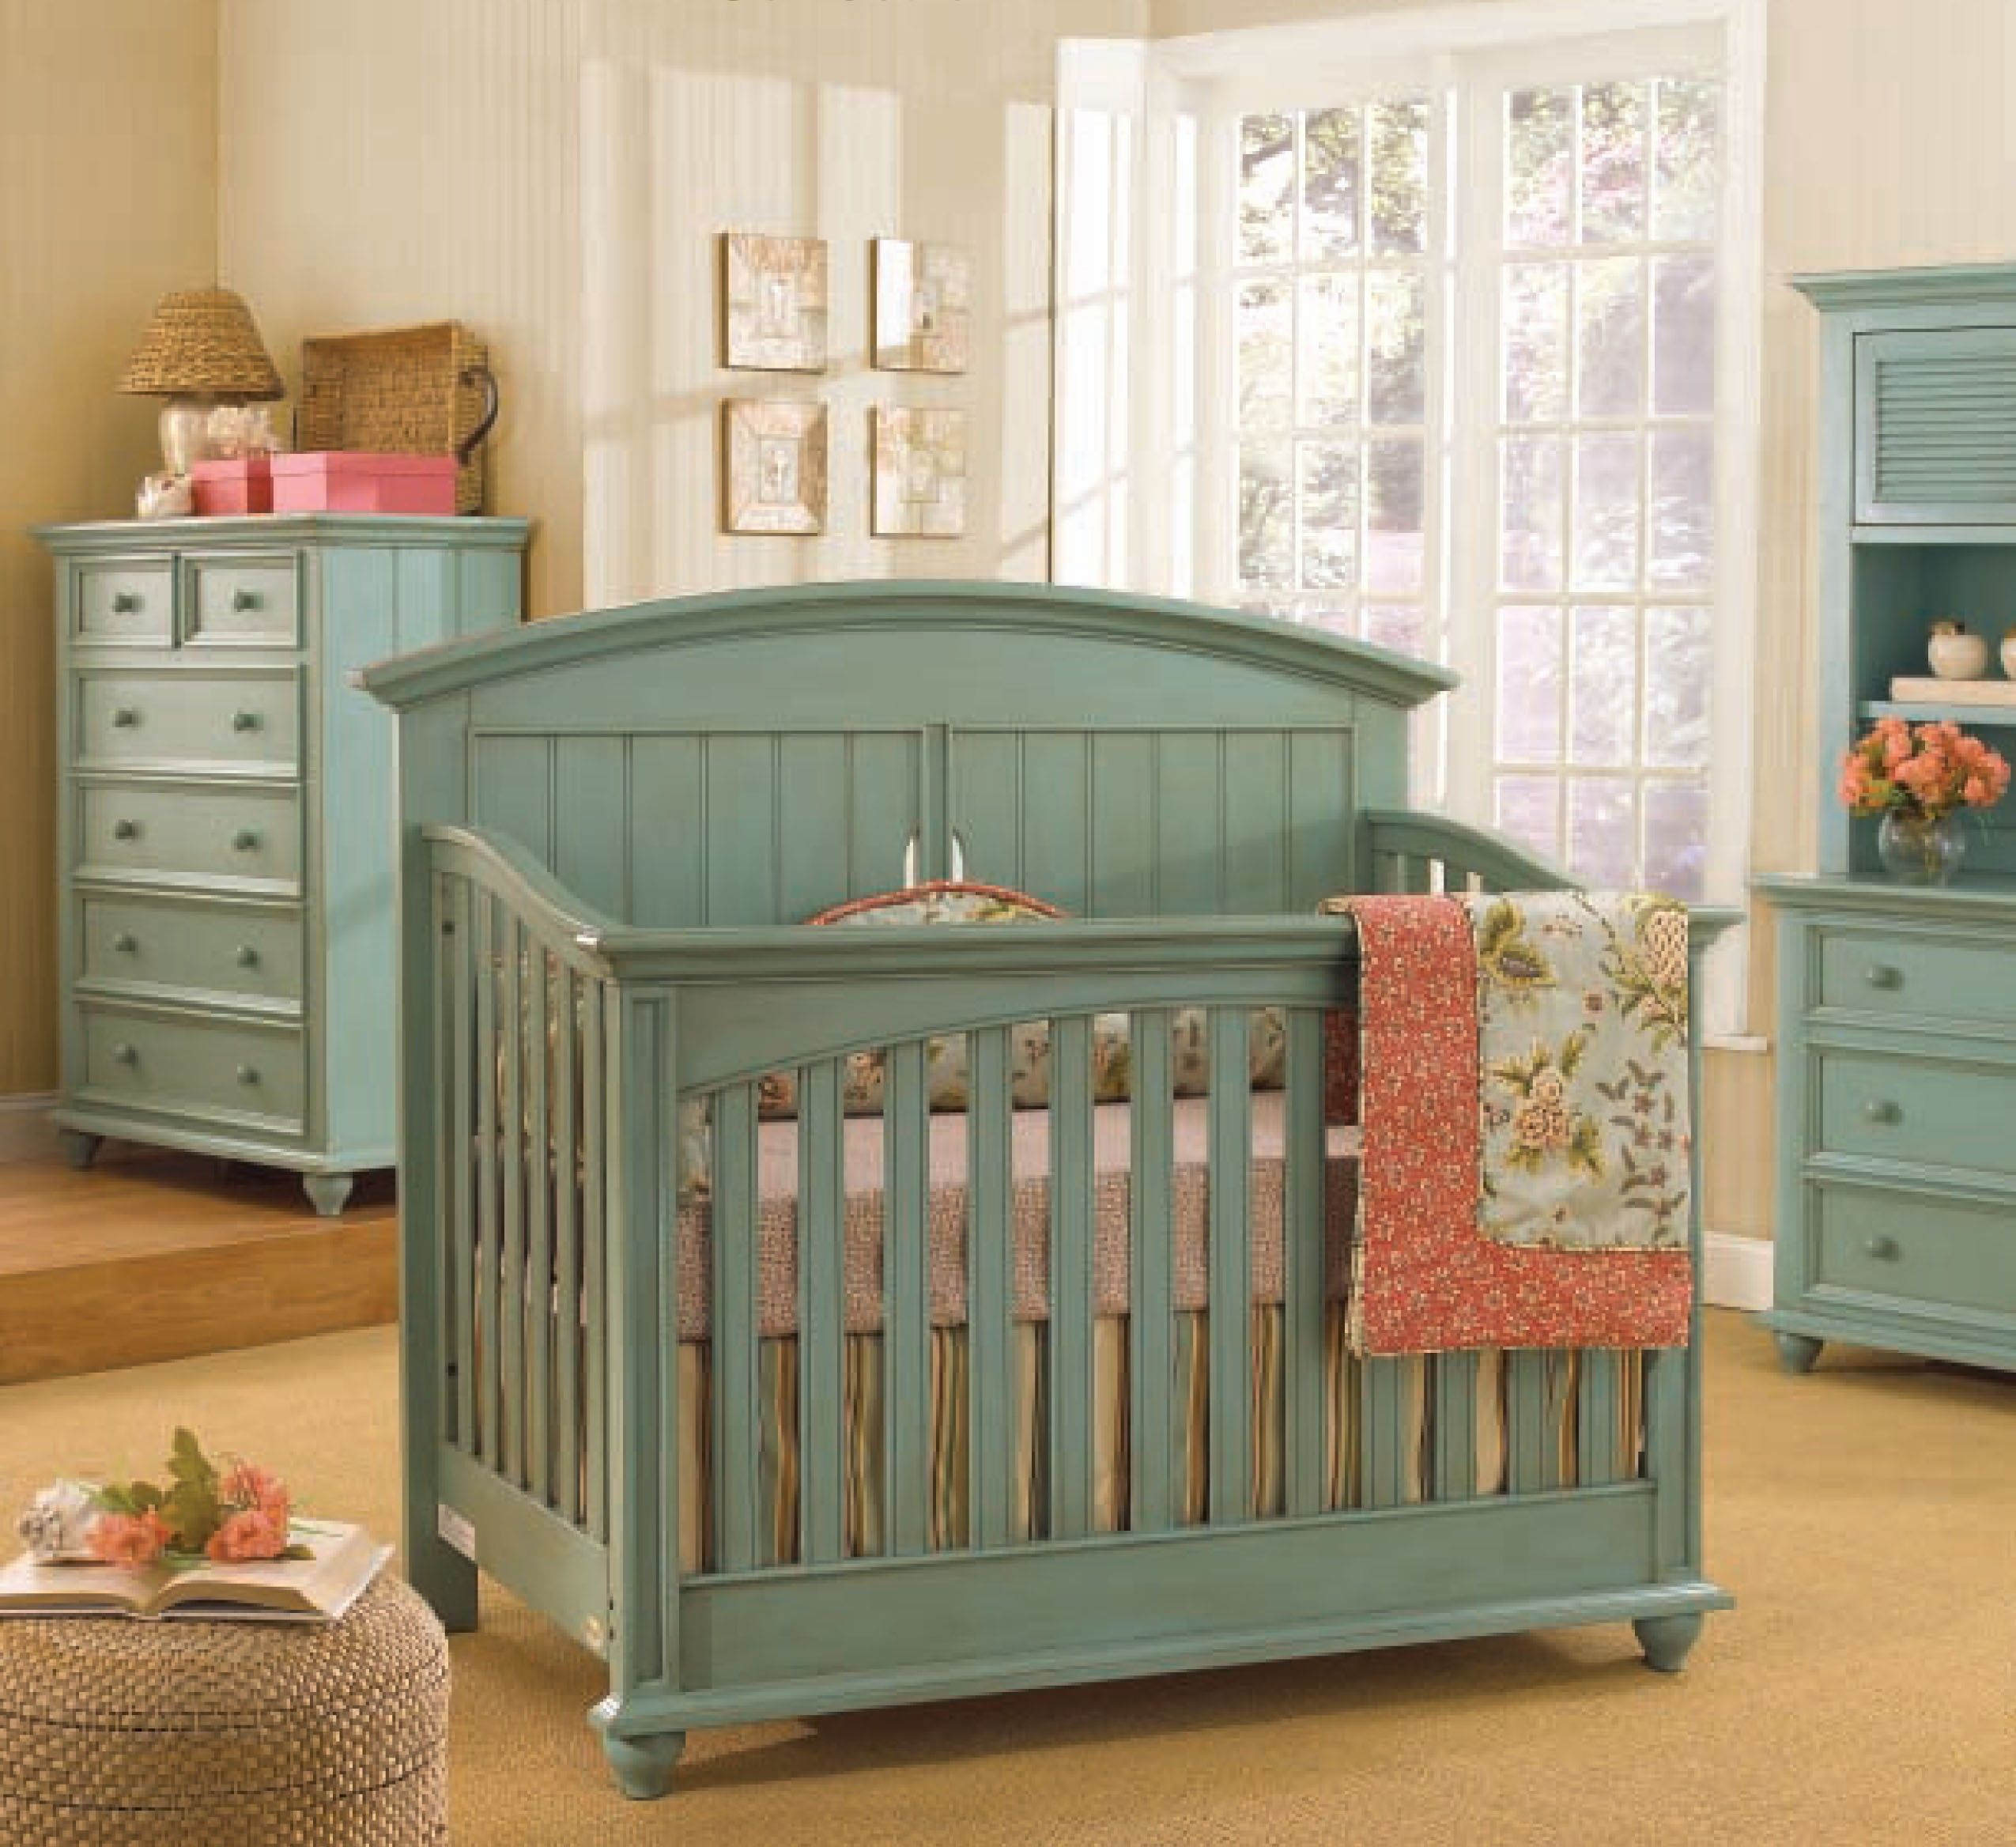 Brookfield fixed gate crib for sale - 1000 Images About Baby On Pinterest Rustic Wood Parks And Baby Rooms